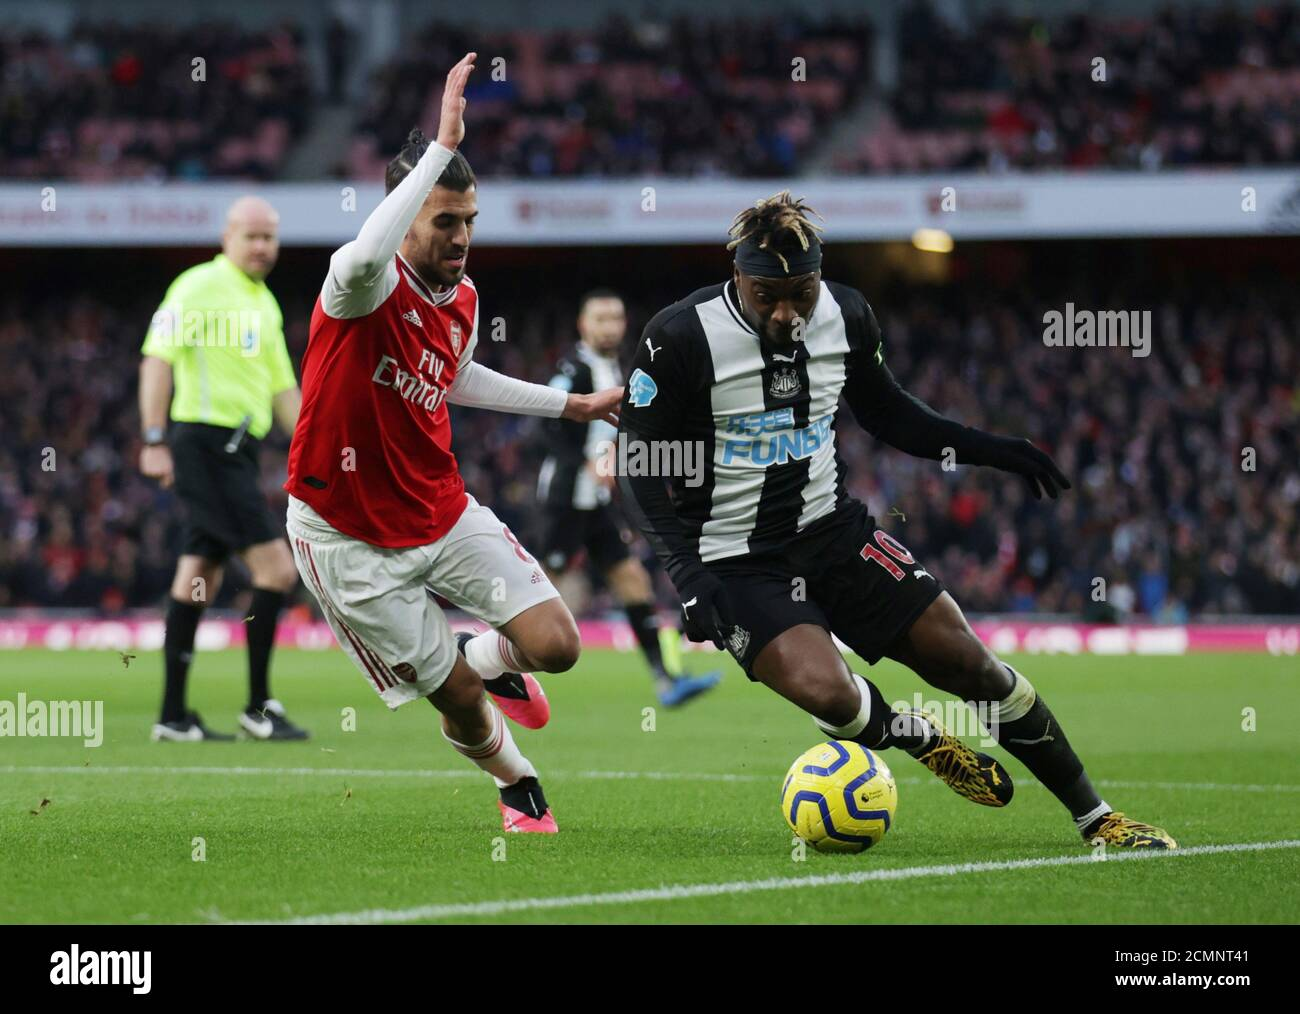 Arsenal V Newcastle High Resolution Stock Photography And Images Alamy